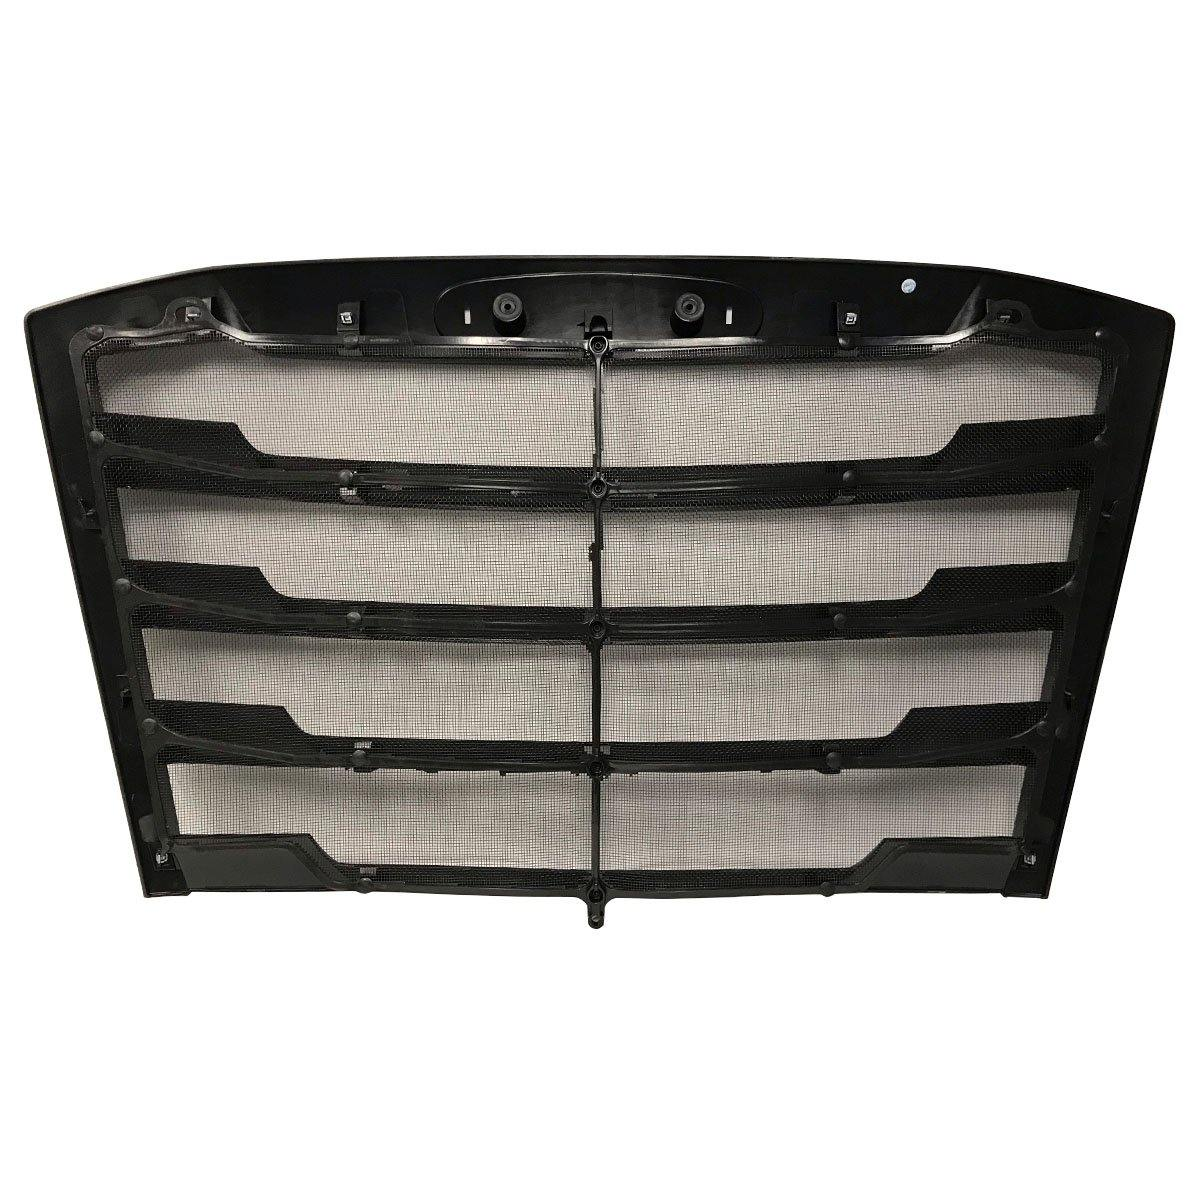 18781-N Freightliner Cascadia Grille W/ Bug Screen (Satin Black) Replaces Oem  A17-20832-008 - BC Heavy Truck Solutions